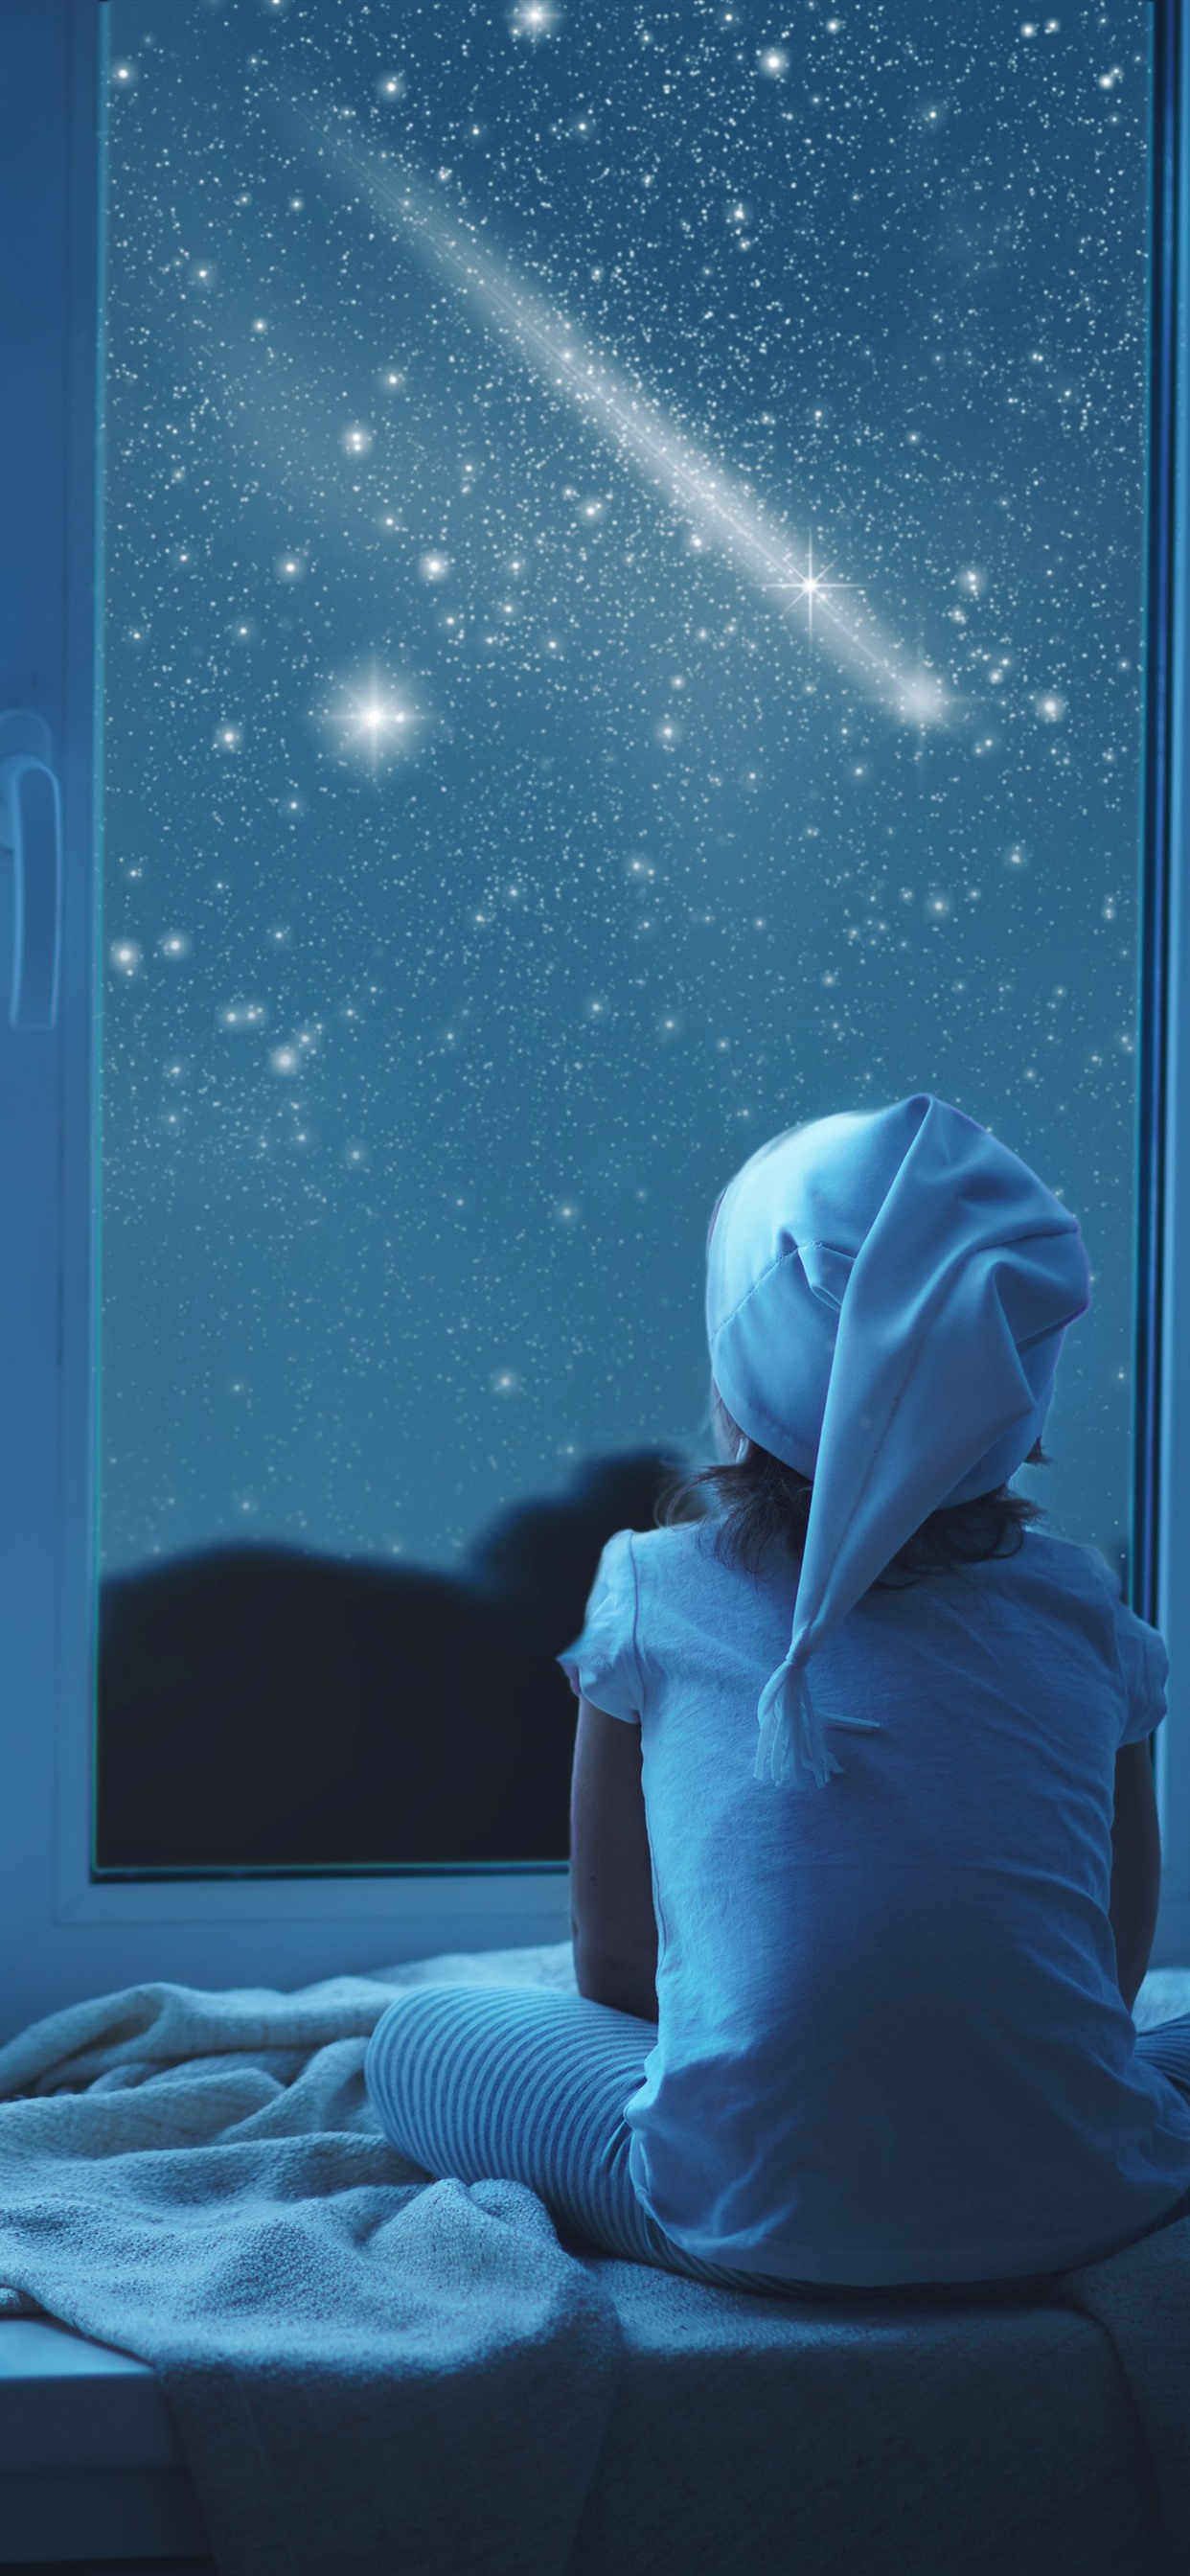 Girl And Teddy Look Out The Window Night Stars Moon 1242x2688 Iphone 11 Pro Xs Max Wallpaper Background Picture Image